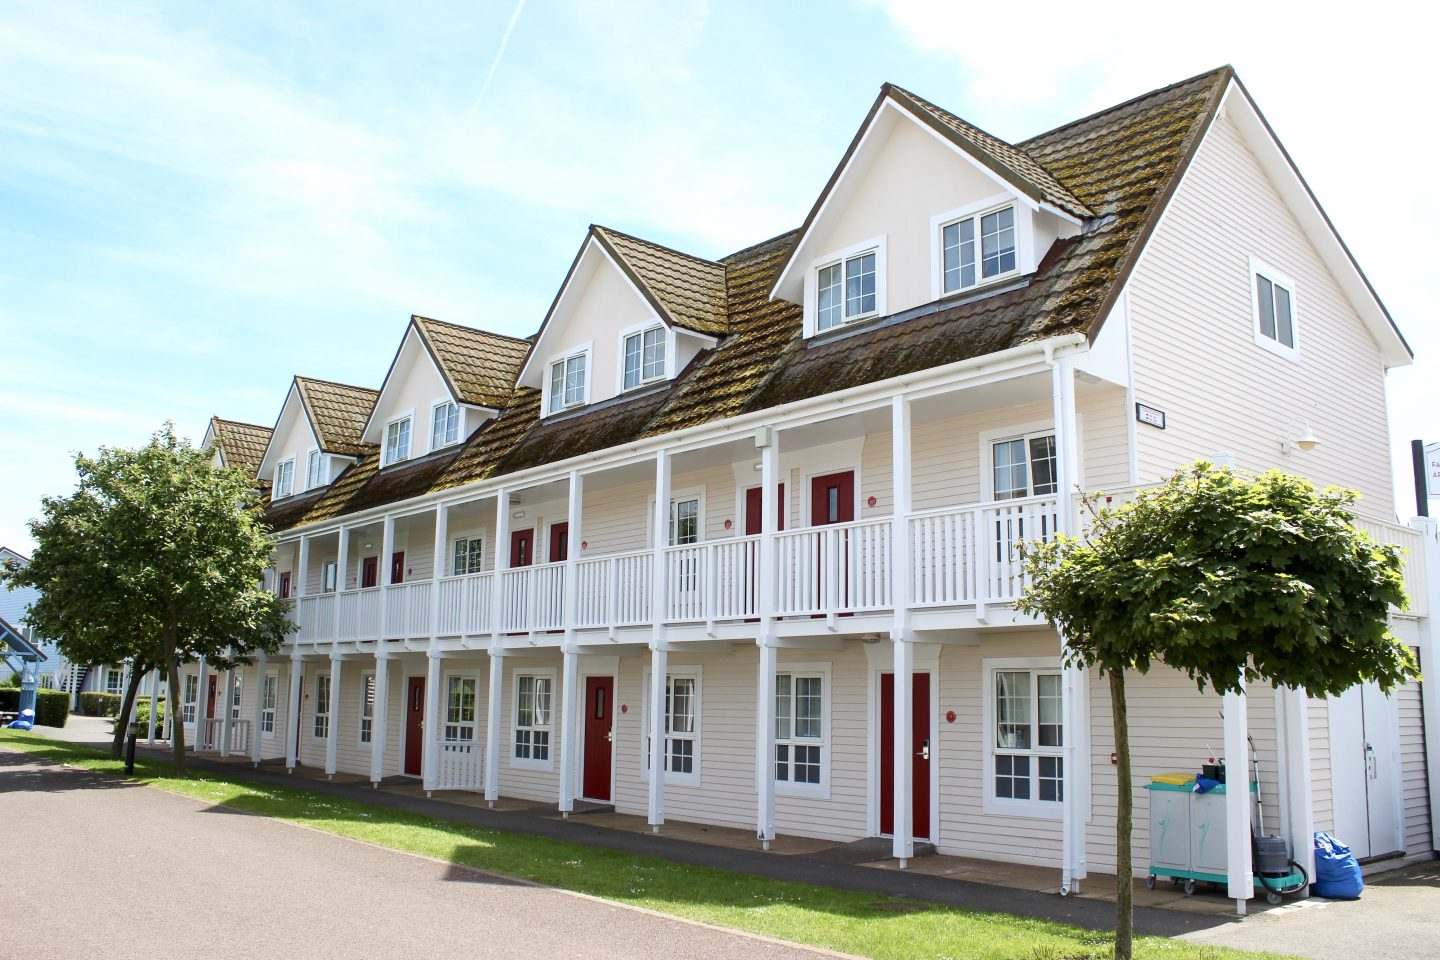 Our Butlins Skegness Holiday Fairground Apartment B